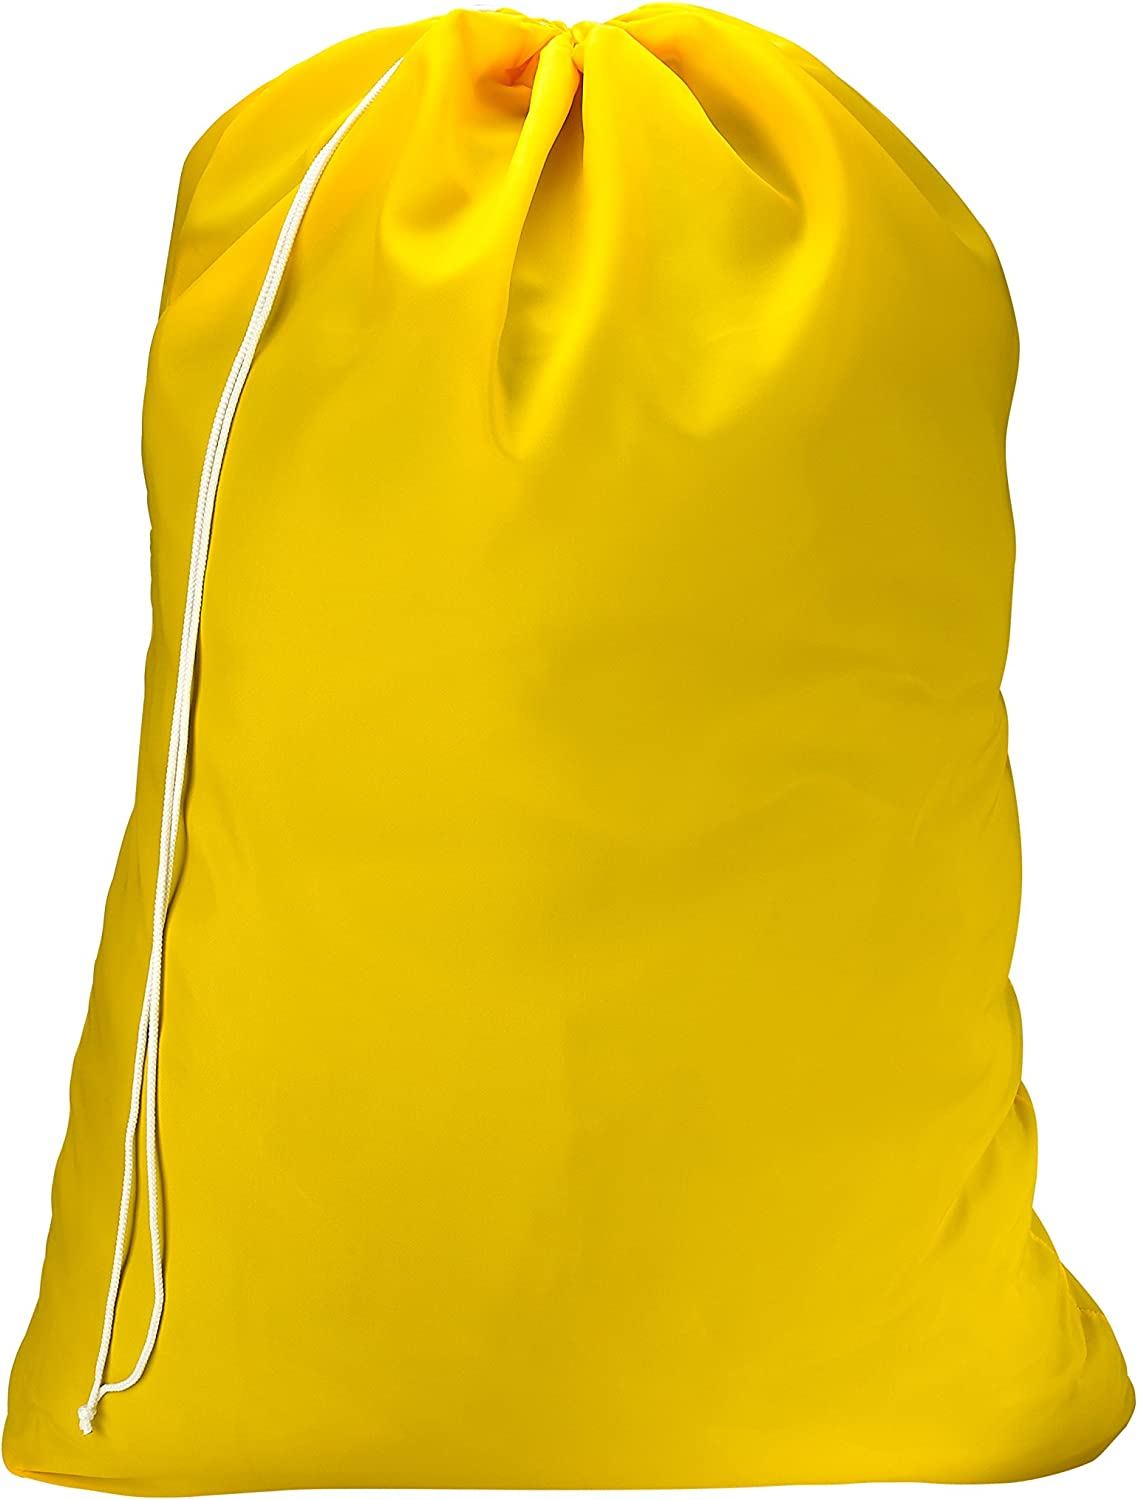 Nylon Laundry Bag - Locking Drawstring Closure and Machine Washable. These Large Bags Will Fit a Laundry Basket or Hamper and Strong Enough to Carry up to Three Loads of Clothes. (Yellow)